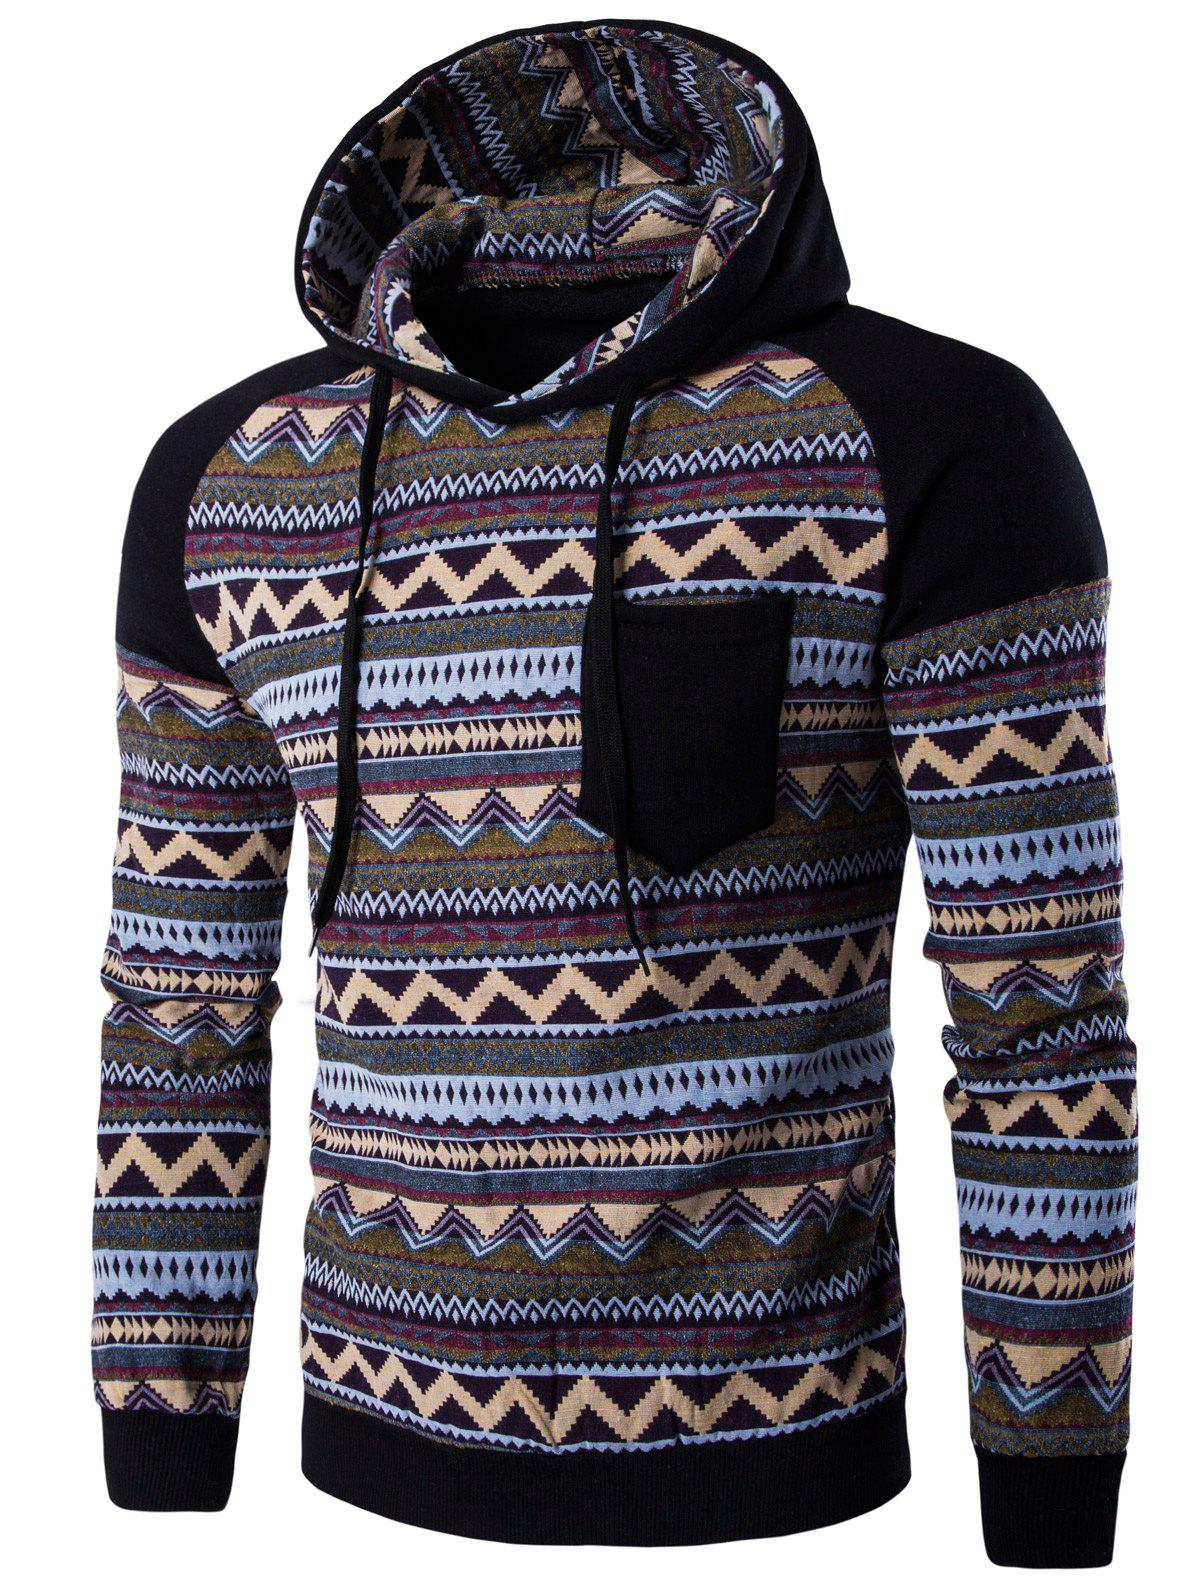 Color Block Tribal Printed Pocket Hooded Raglan Sleeve HoodieMEN<br><br>Size: 2XL; Color: BLACK; Material: Cotton,Polyester; Shirt Length: Regular; Sleeve Length: Full; Style: Fashion; Weight: 0.4070kg; Package Contents: 1 x Hoodie;